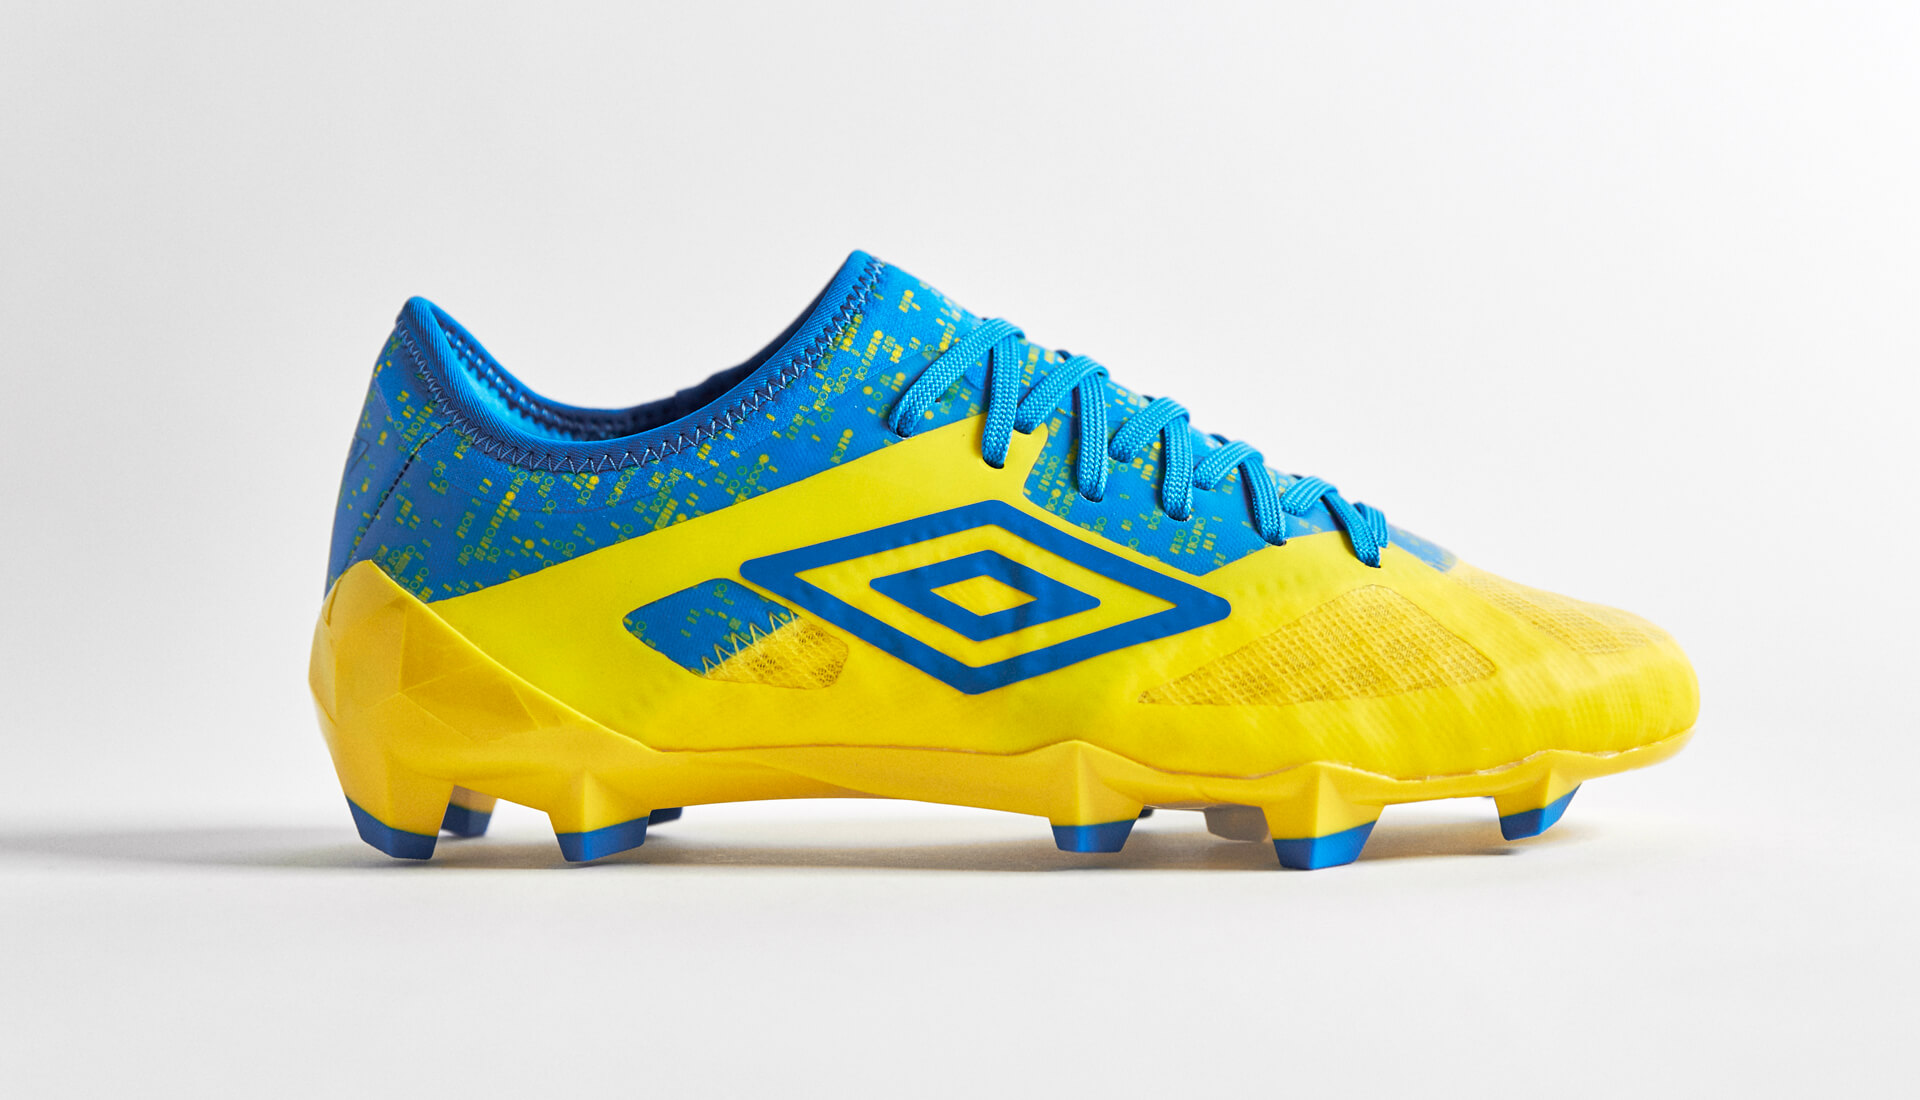 Fashion style Cleats Umbro yellow for girls